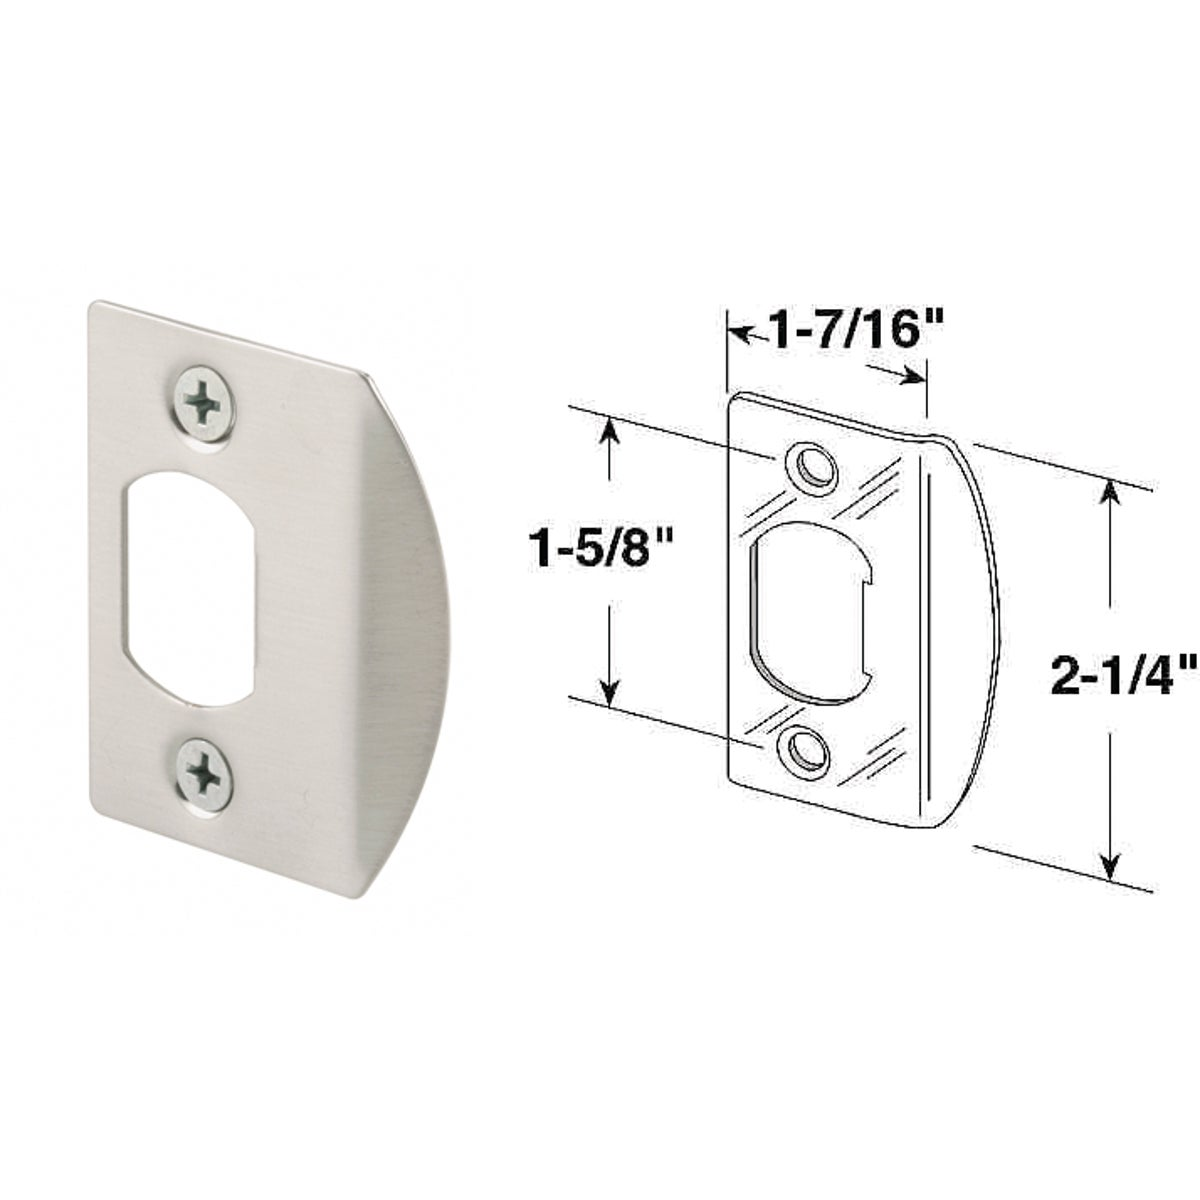 SN STRIKE PLATE - E-2457 by Prime Line Products